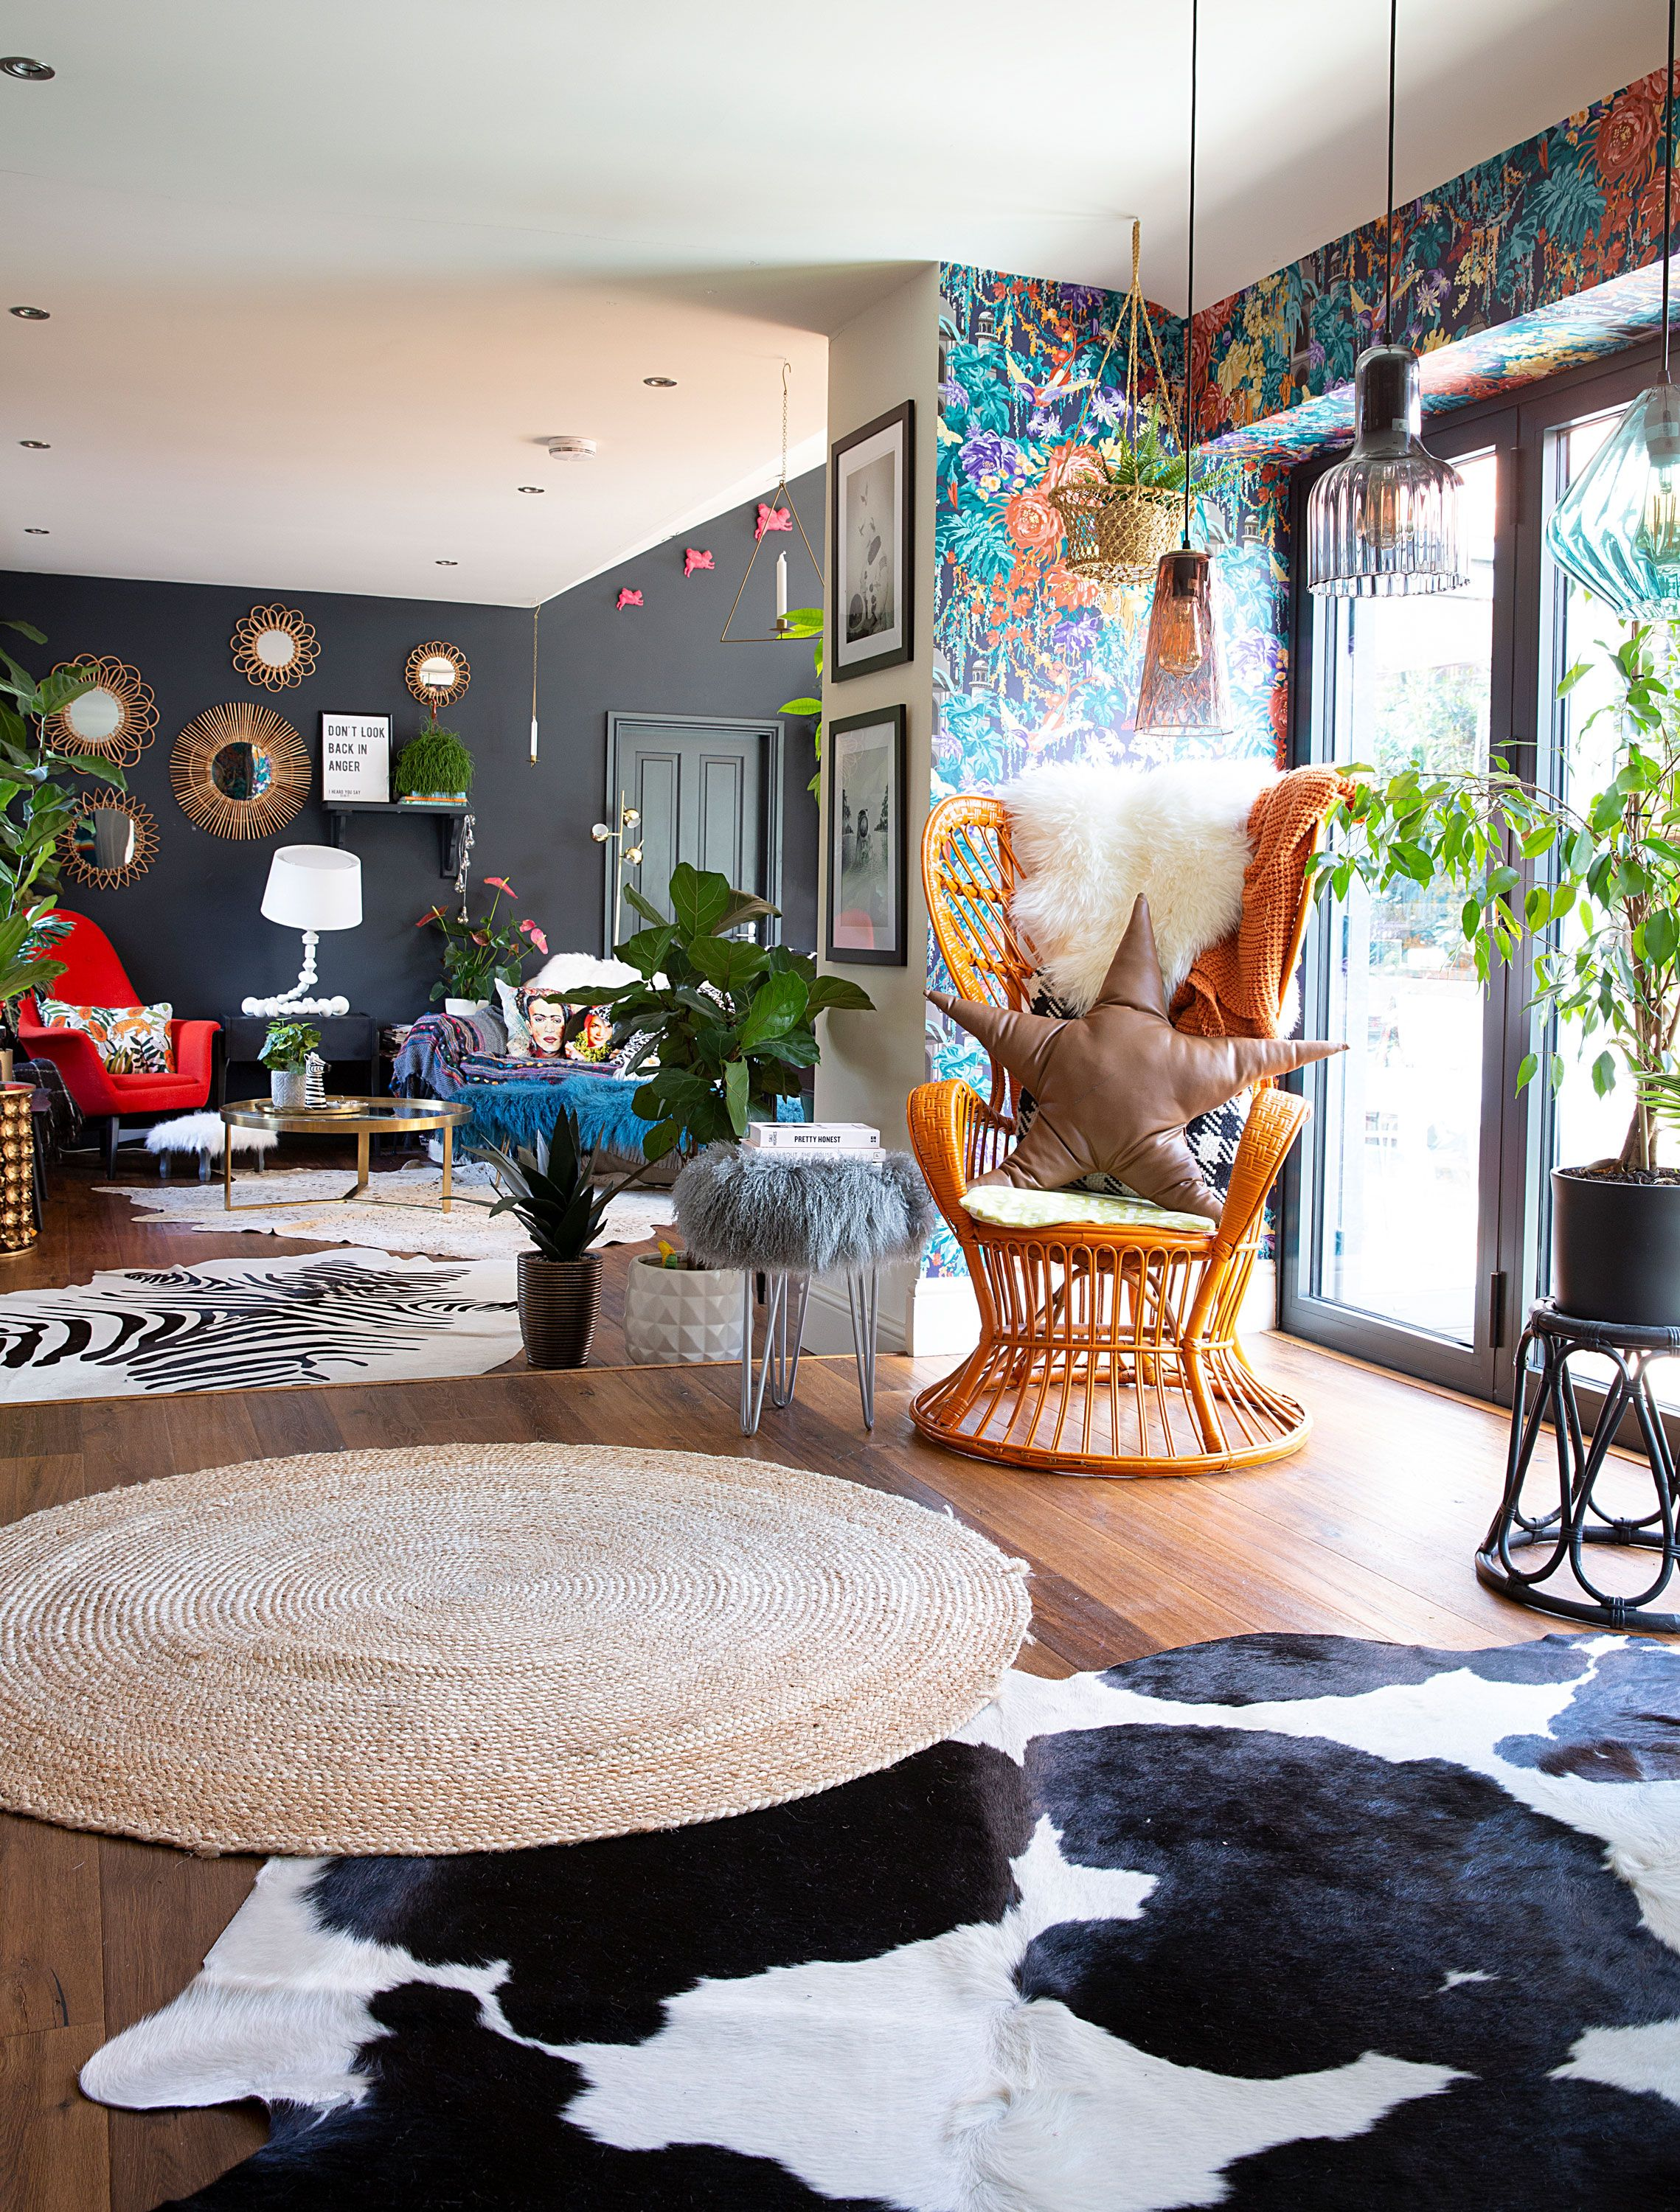 Extraordinaire  Mot-Clé This extended home is a maximalist dream